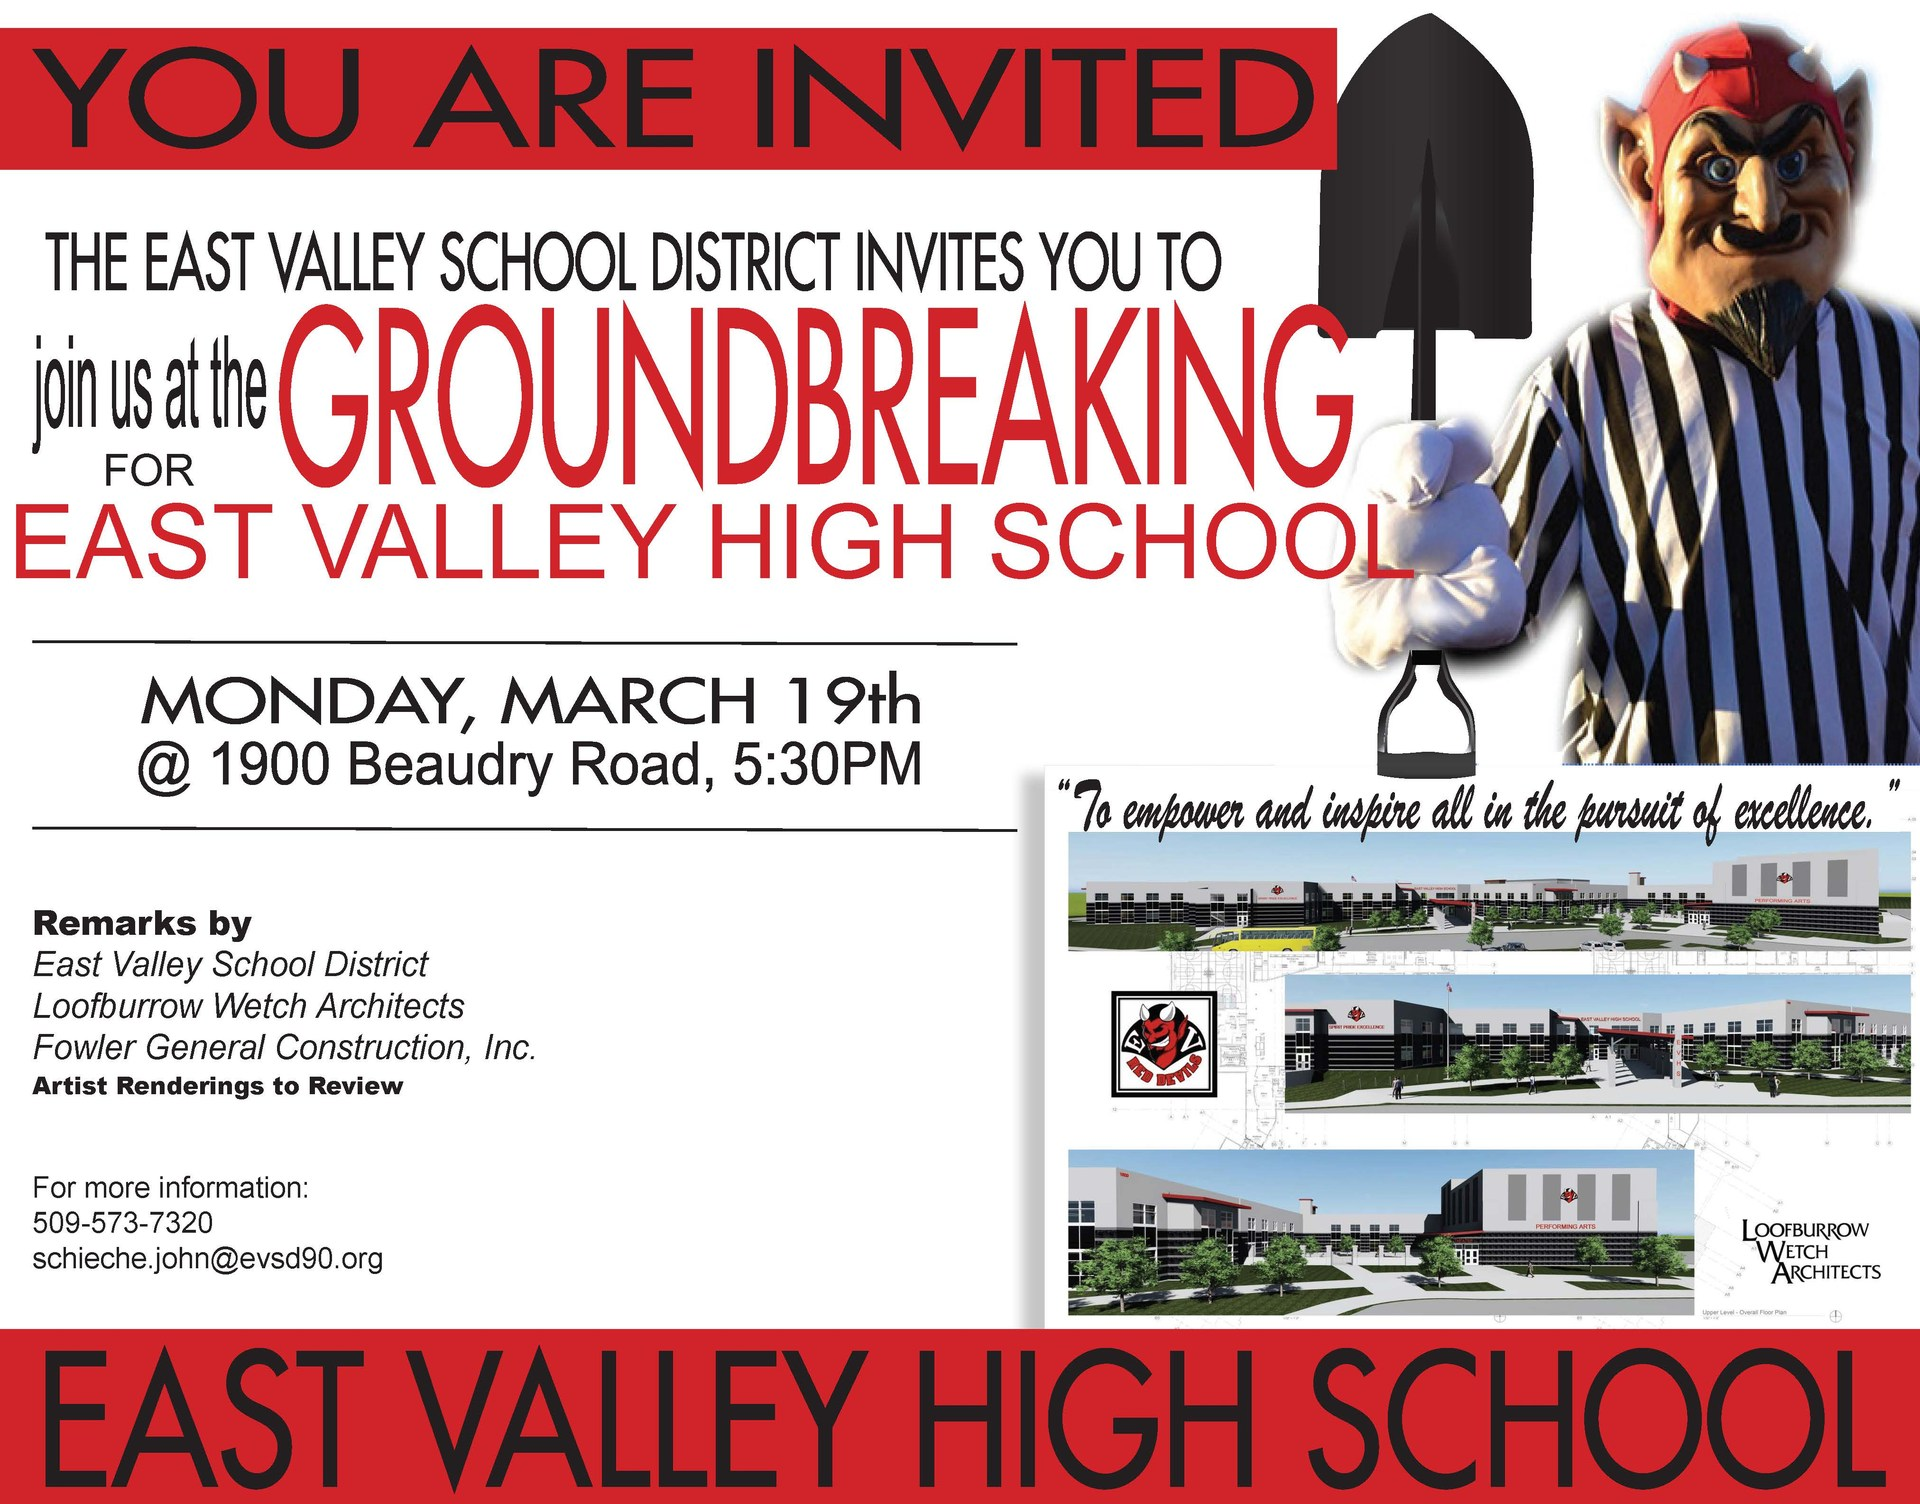 Flyer inviting community members to our ground breaking ceremony on March 19, 2018 at 5:30 in the evening at East Valley High School